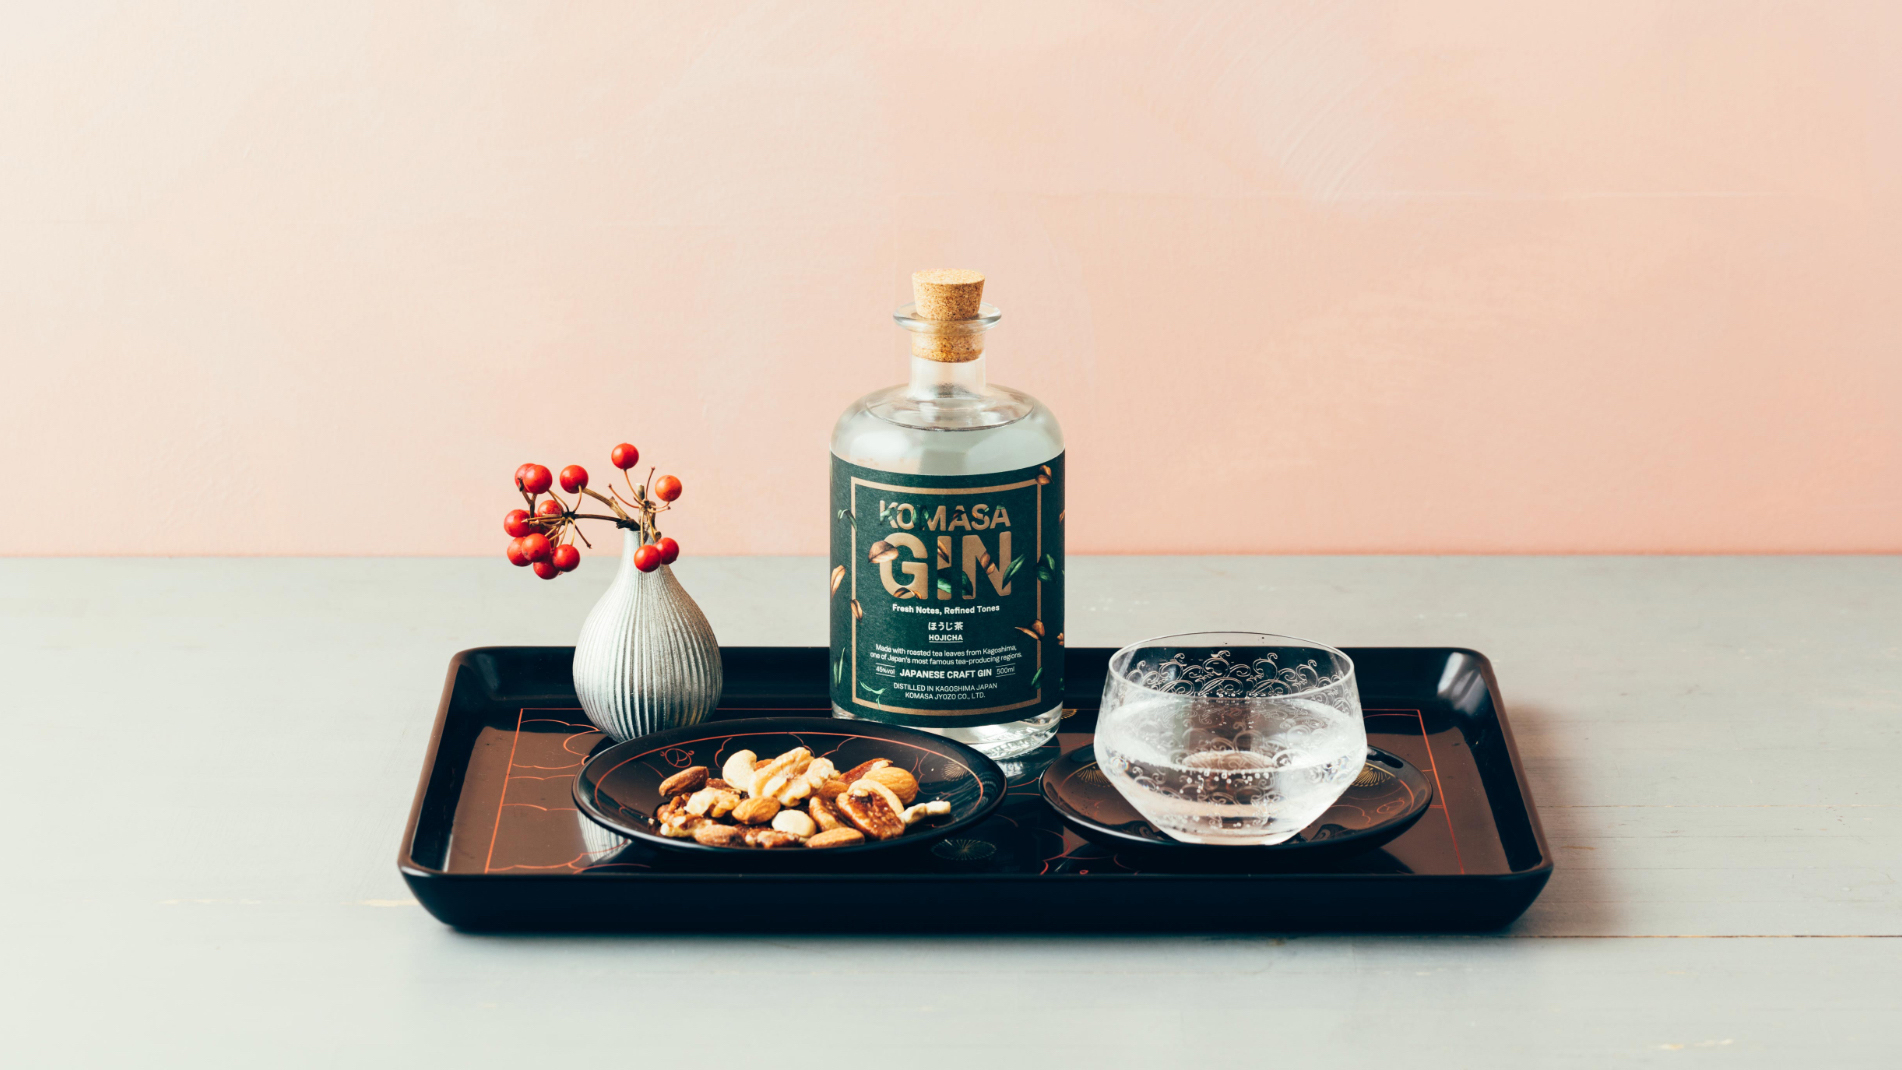 Best Japanese artisanal and craft gin